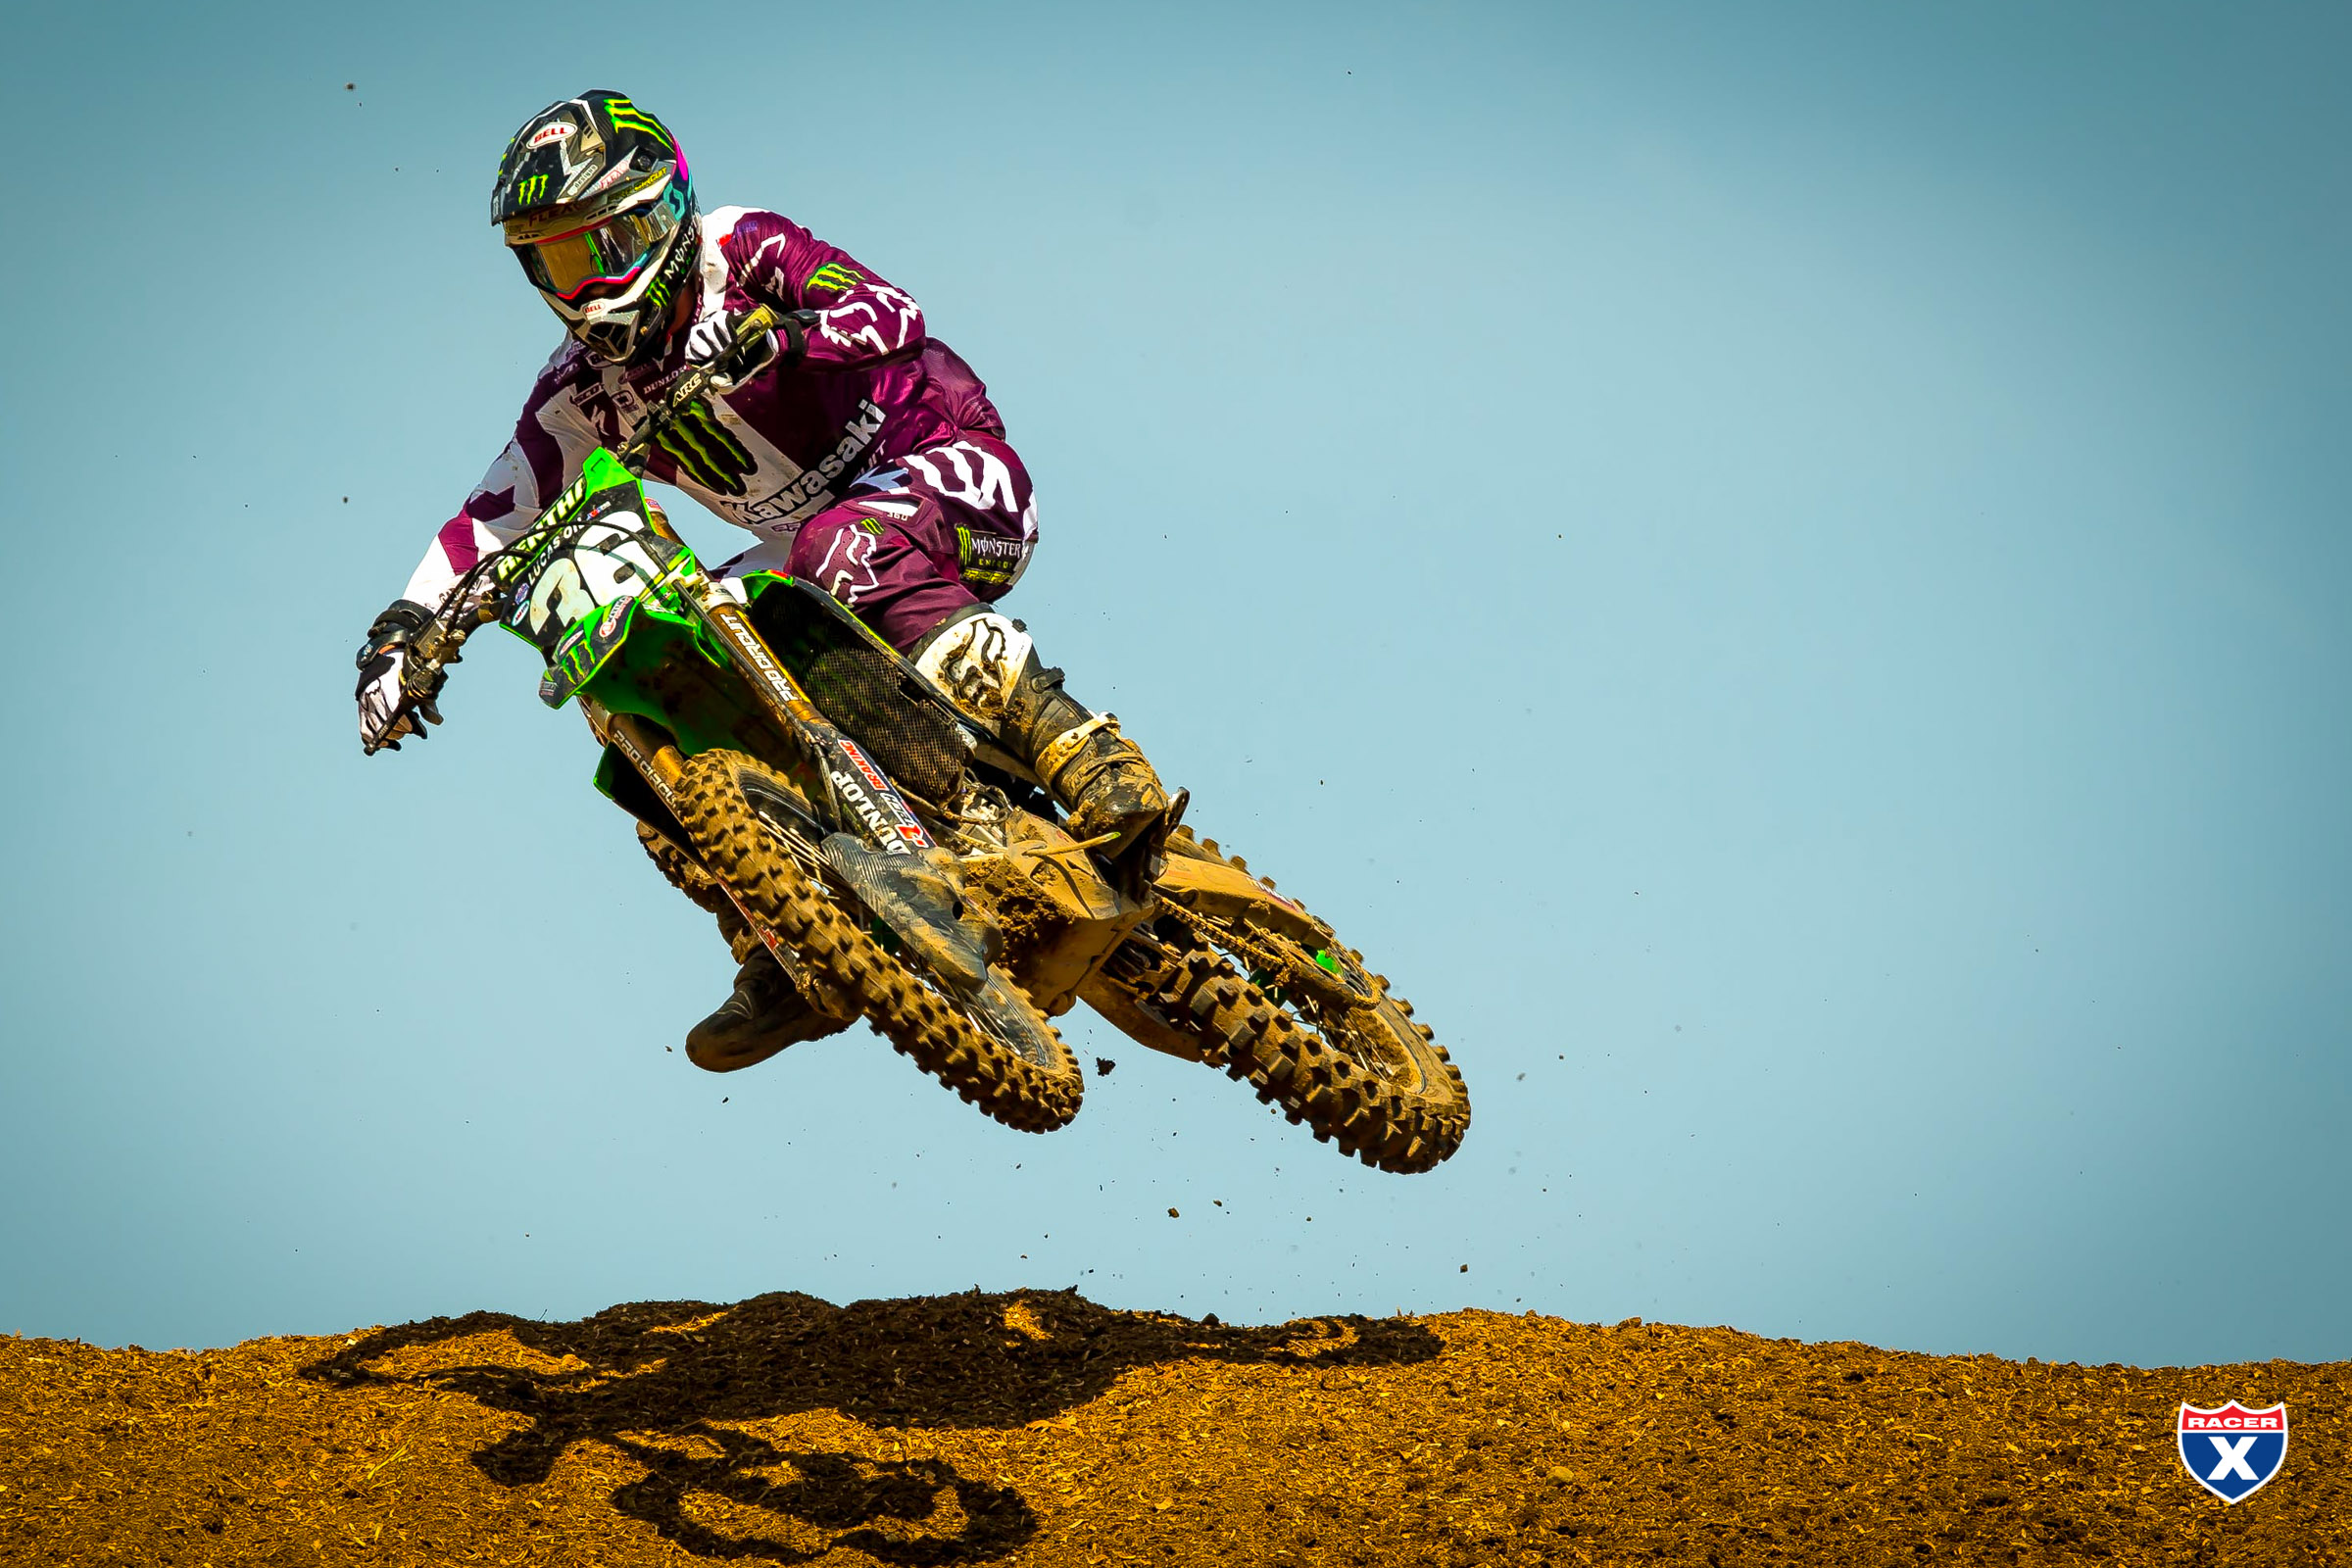 Cianciarulo_MX17_Ironman_RS_2197